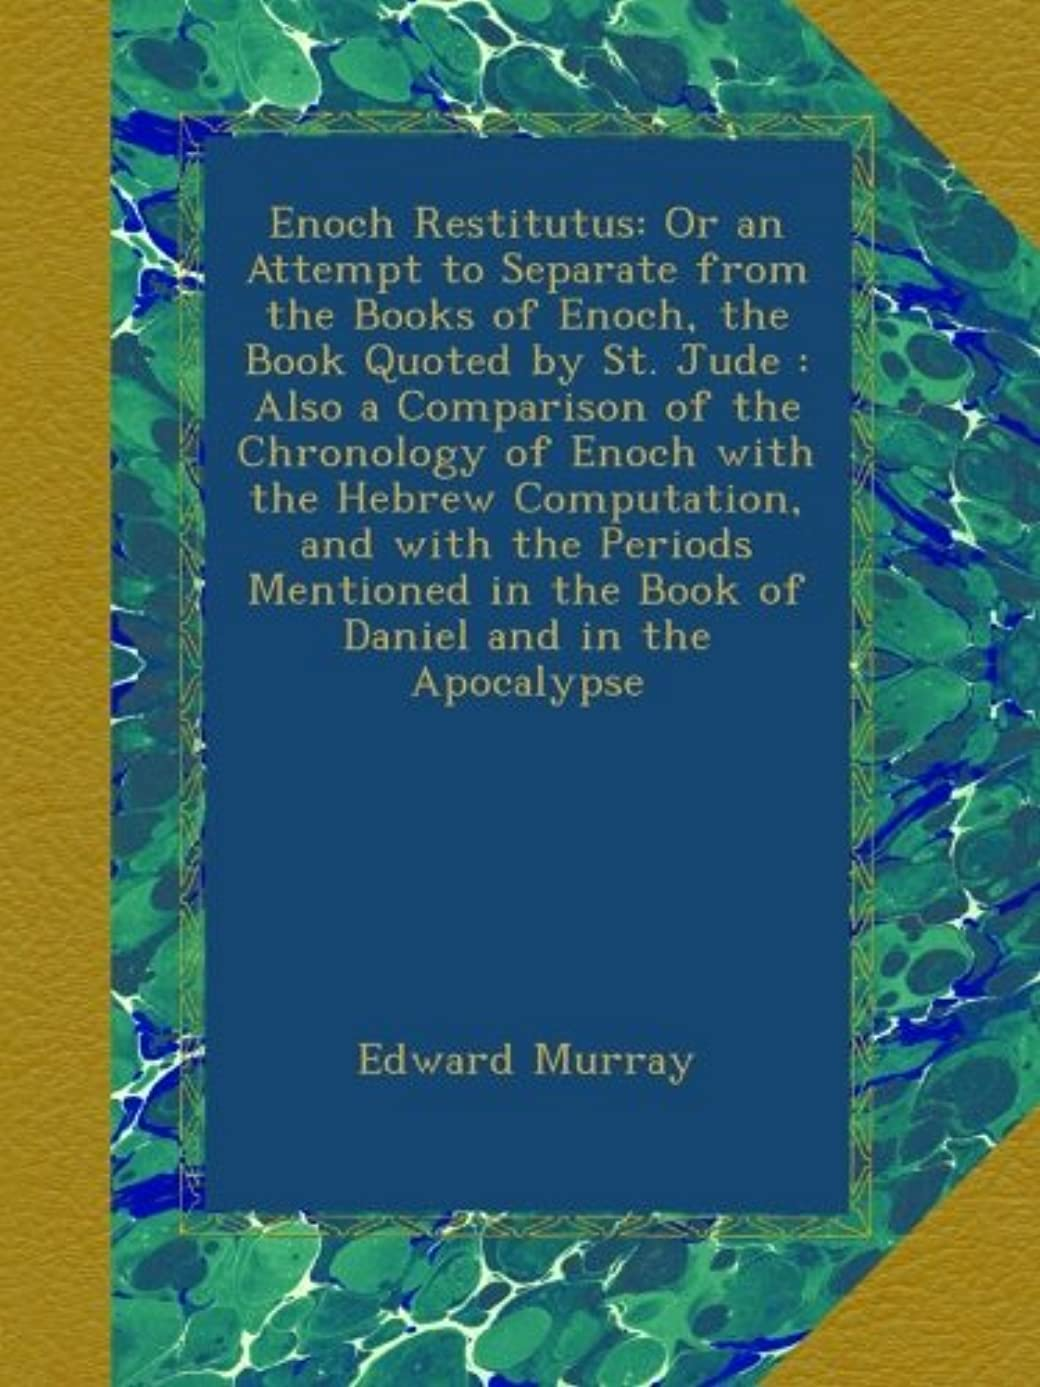 既婚免除する見せますEnoch Restitutus: Or an Attempt to Separate from the Books of Enoch, the Book Quoted by St. Jude : Also a Comparison of the Chronology of Enoch with the Hebrew Computation, and with the Periods Mentioned in the Book of Daniel and in the Apocalypse